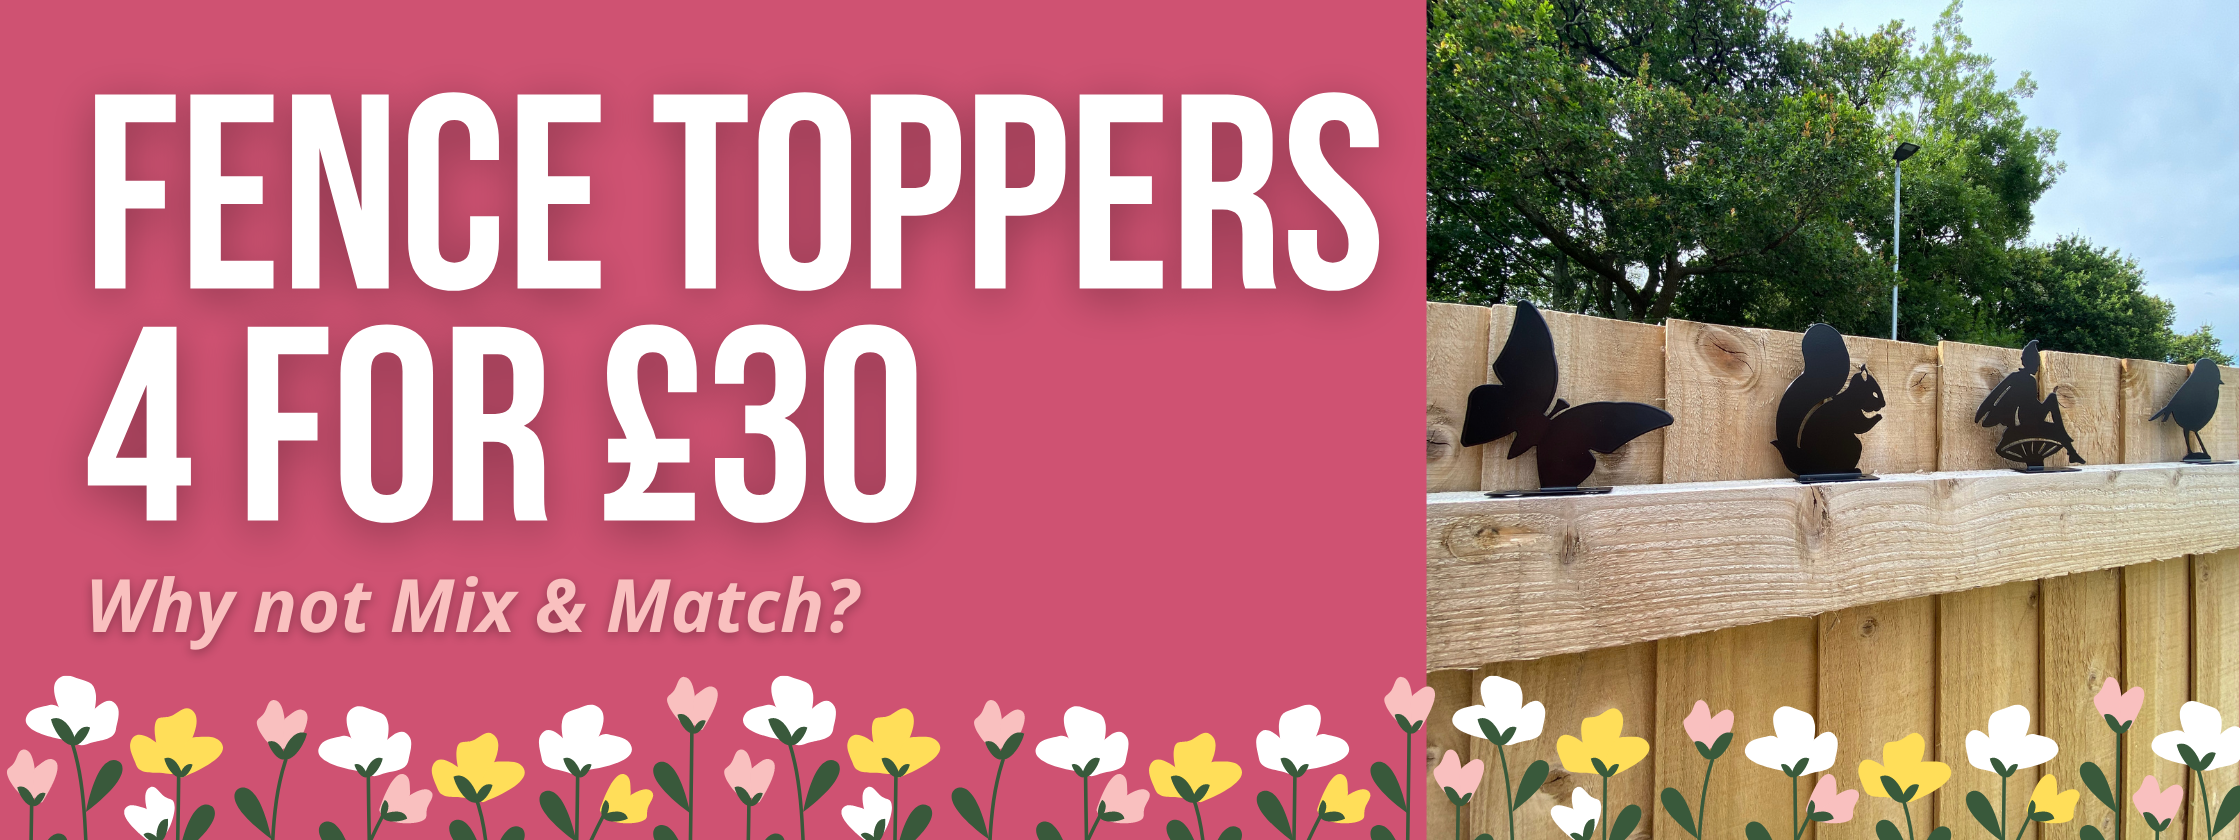 fence toppers 4 for £30 why not mix and match?